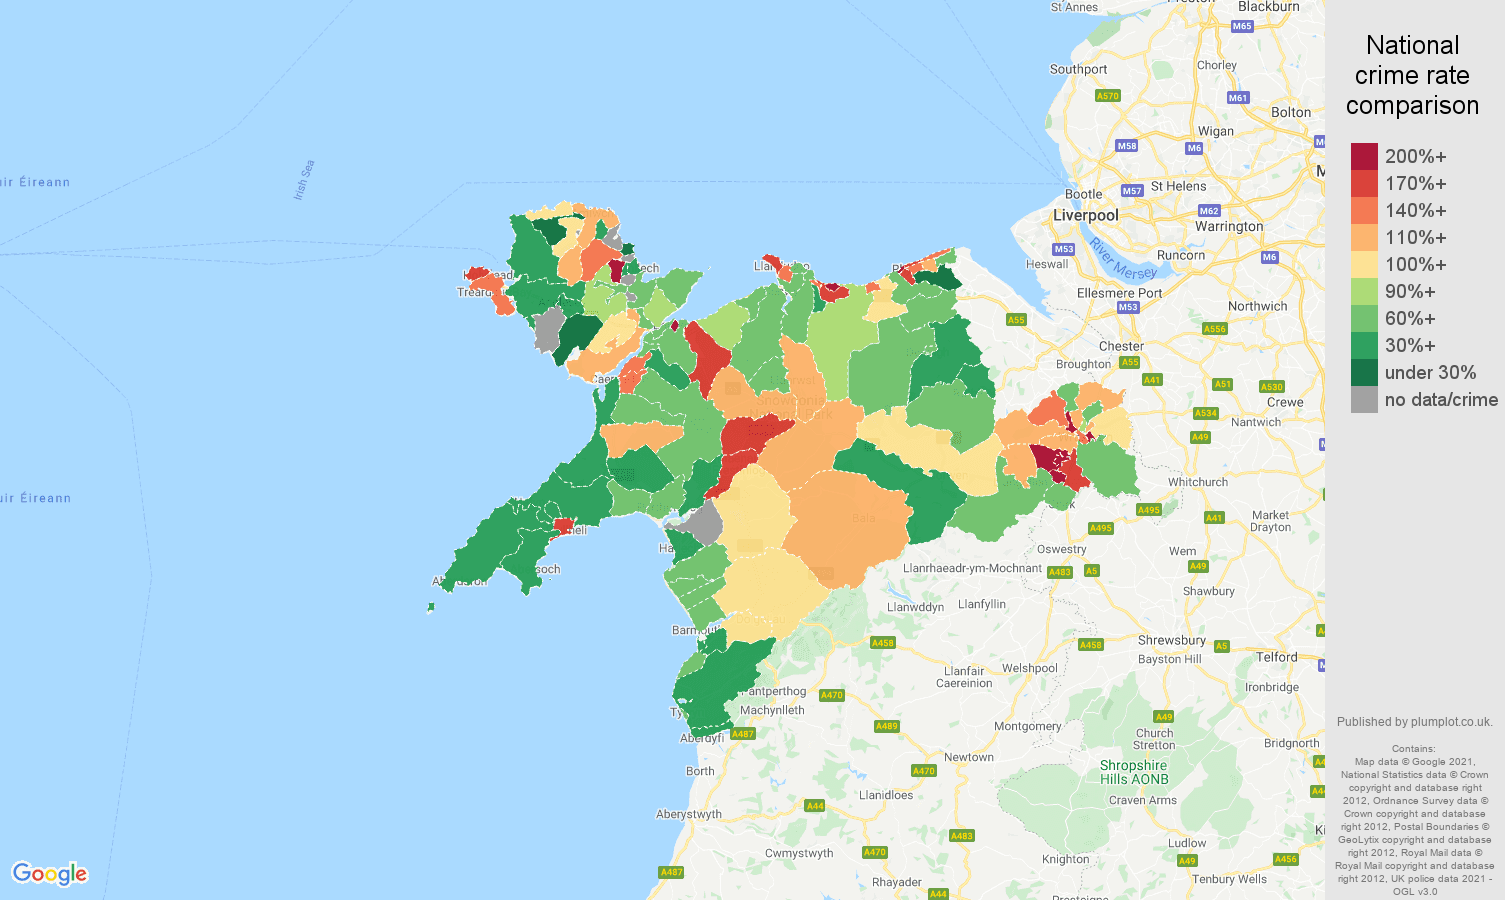 Llandudno criminal damage and arson crime rate comparison map